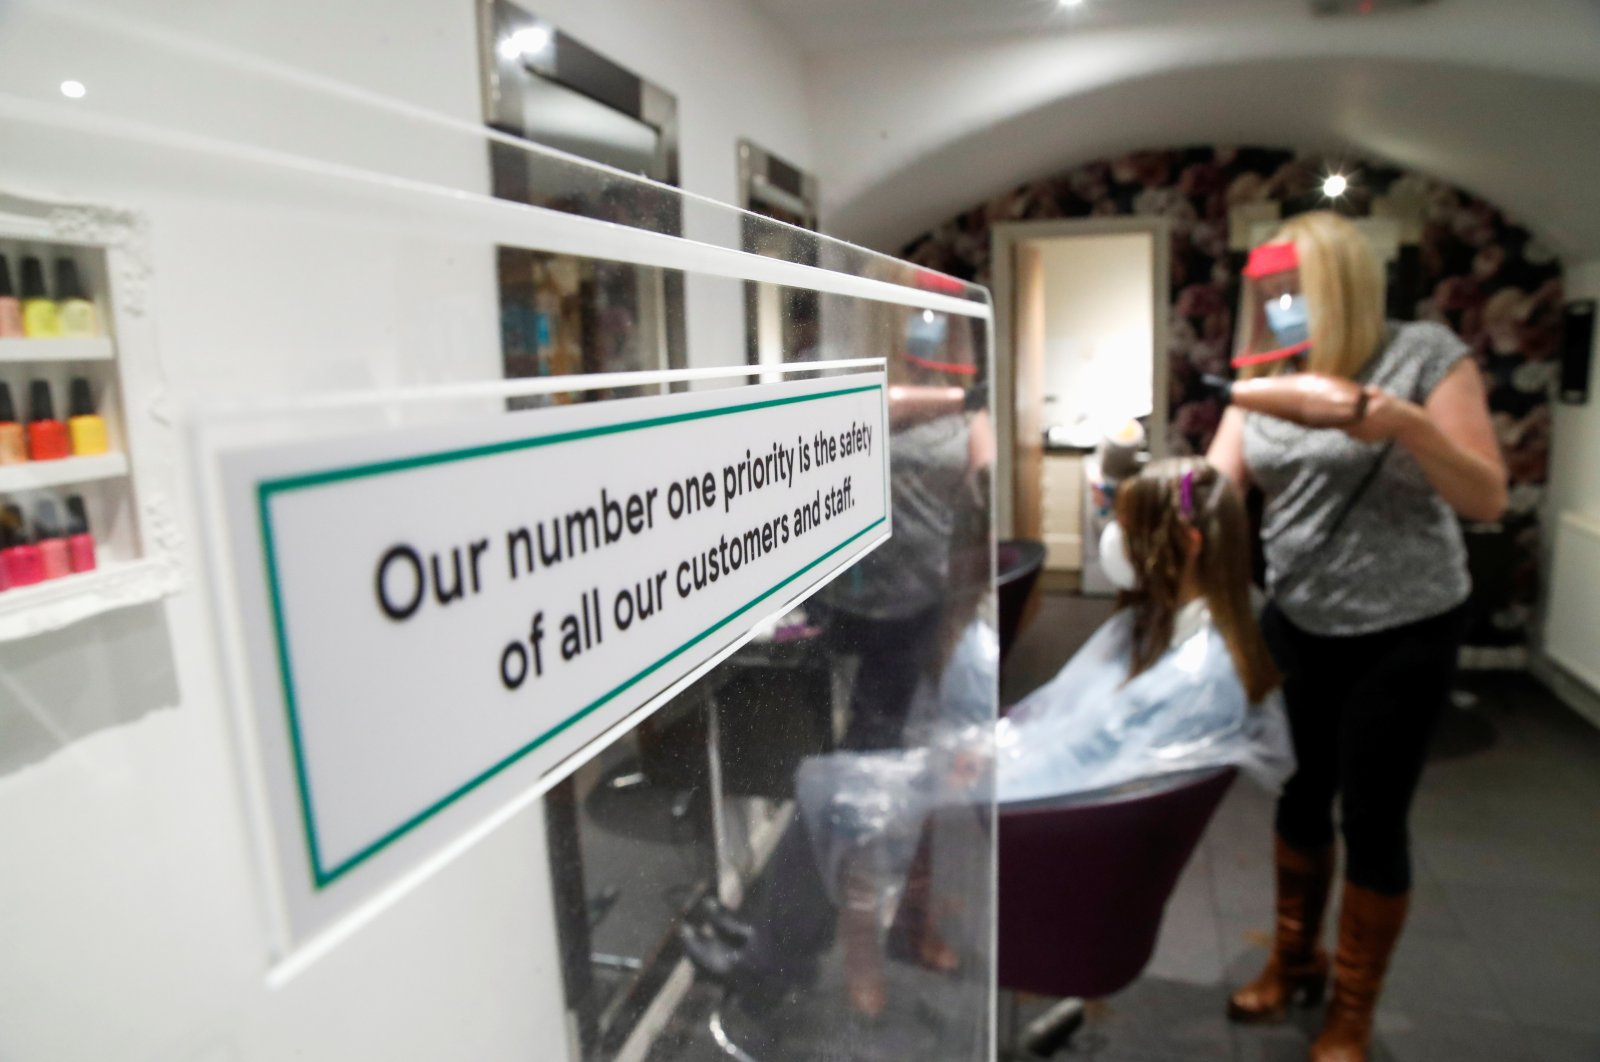 The owner of Hair & Beauty Gallery blow-dries a customer's hair as non-essential businesses reopen as COVID-19 lockdown restrictions begin to ease in Warwick, Britain, April 12, 2021. (Reuters Photo)